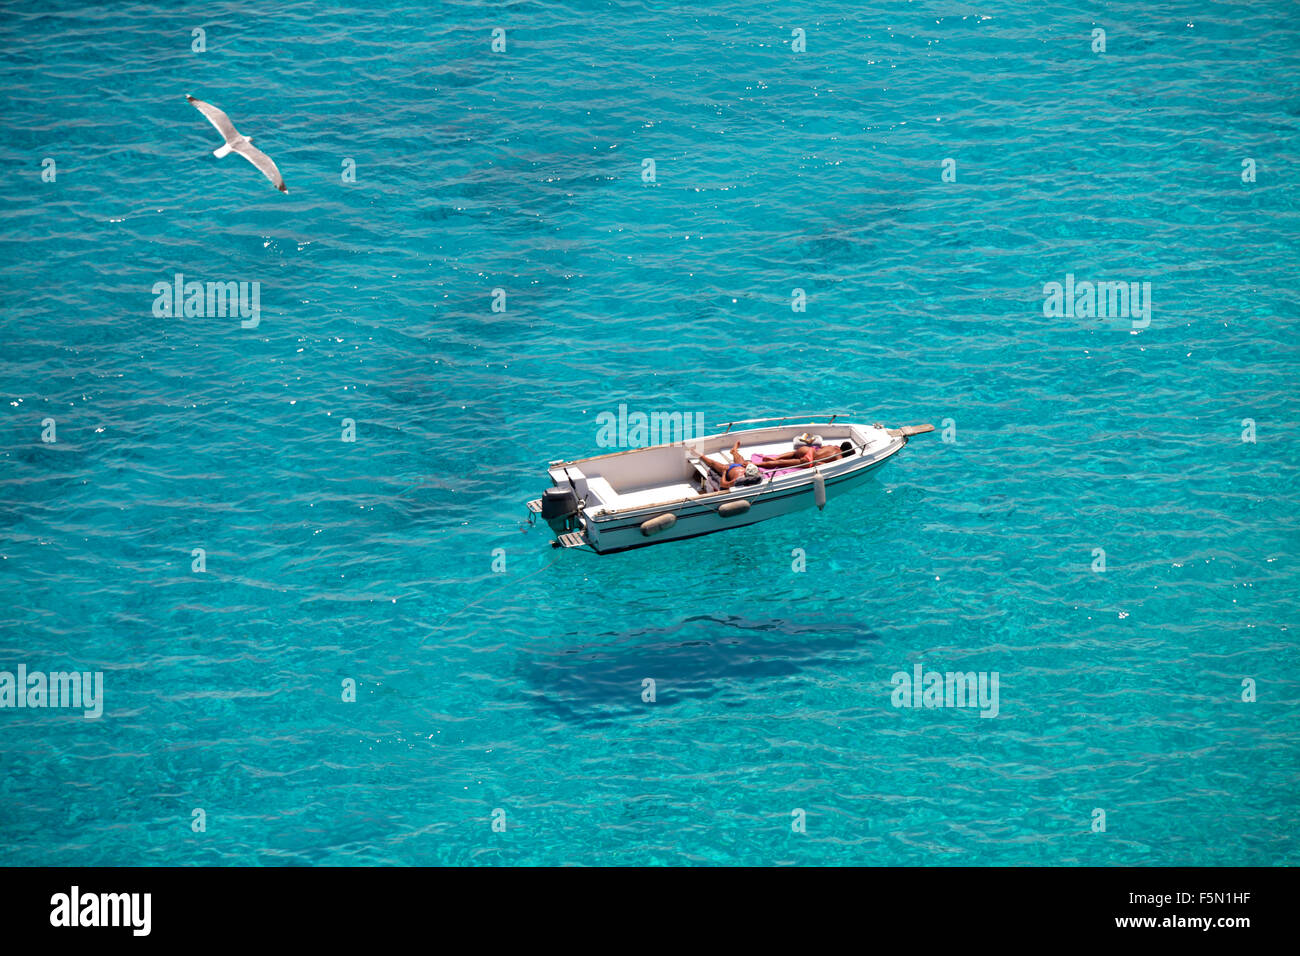 Flying boats at Tabaccara bay in Lampedusa, Italy - Stock Image